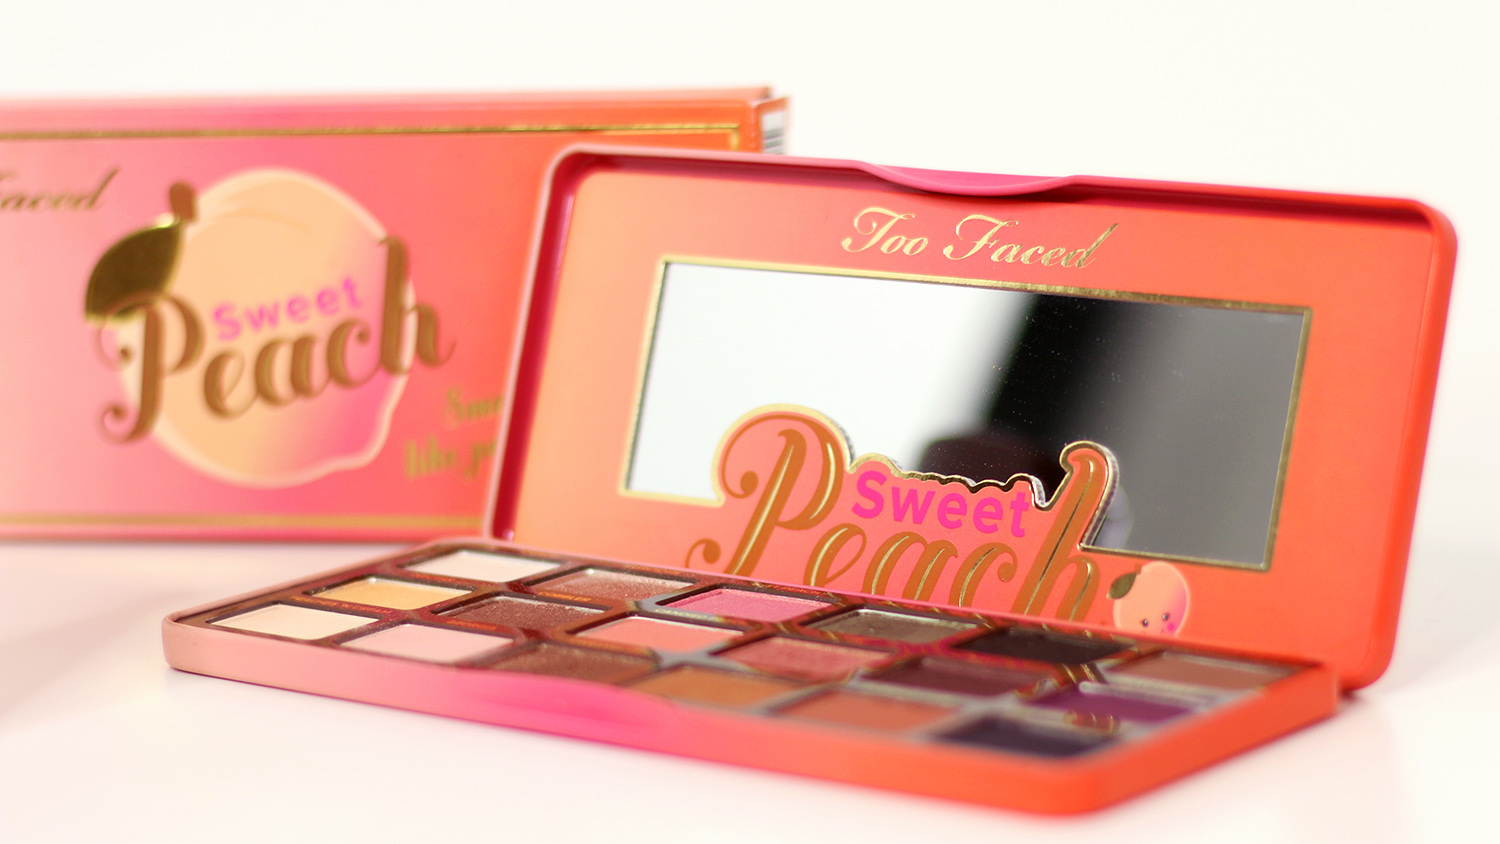 Too Faced, Sweet Peach, Lidschatten, Lidschattenpalette, Shopping Haul, USA, Video, Beautyblog, Berlin, Review, Advanceyourstyle